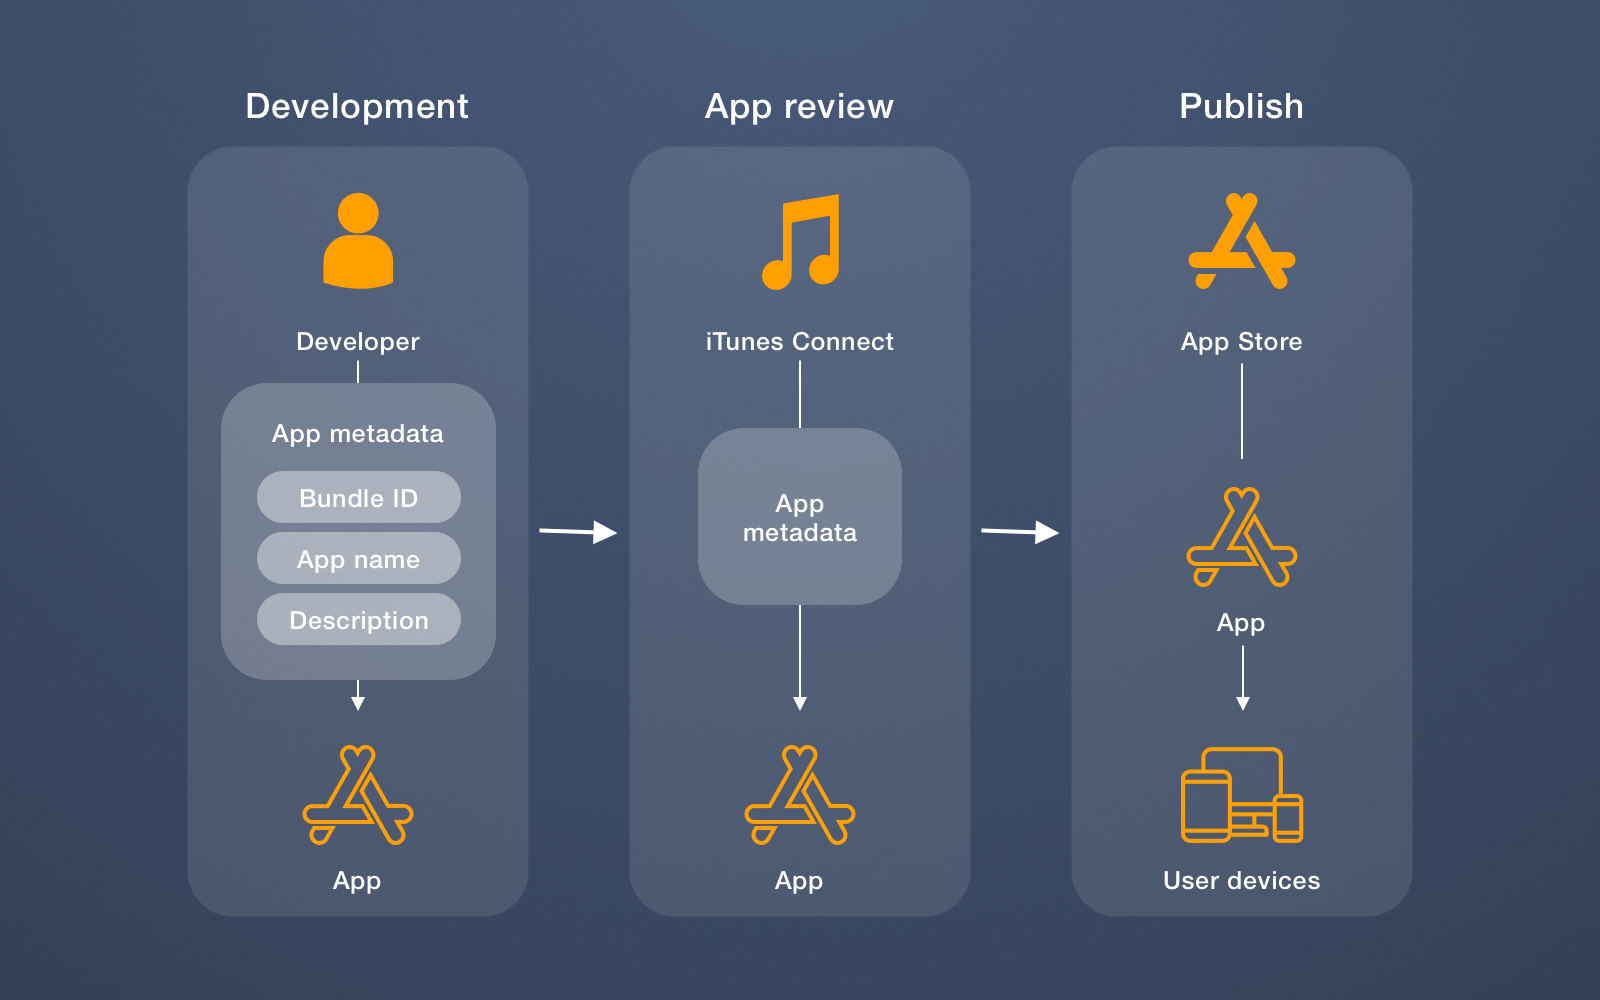 How the process of publishing an app to the app store looks like